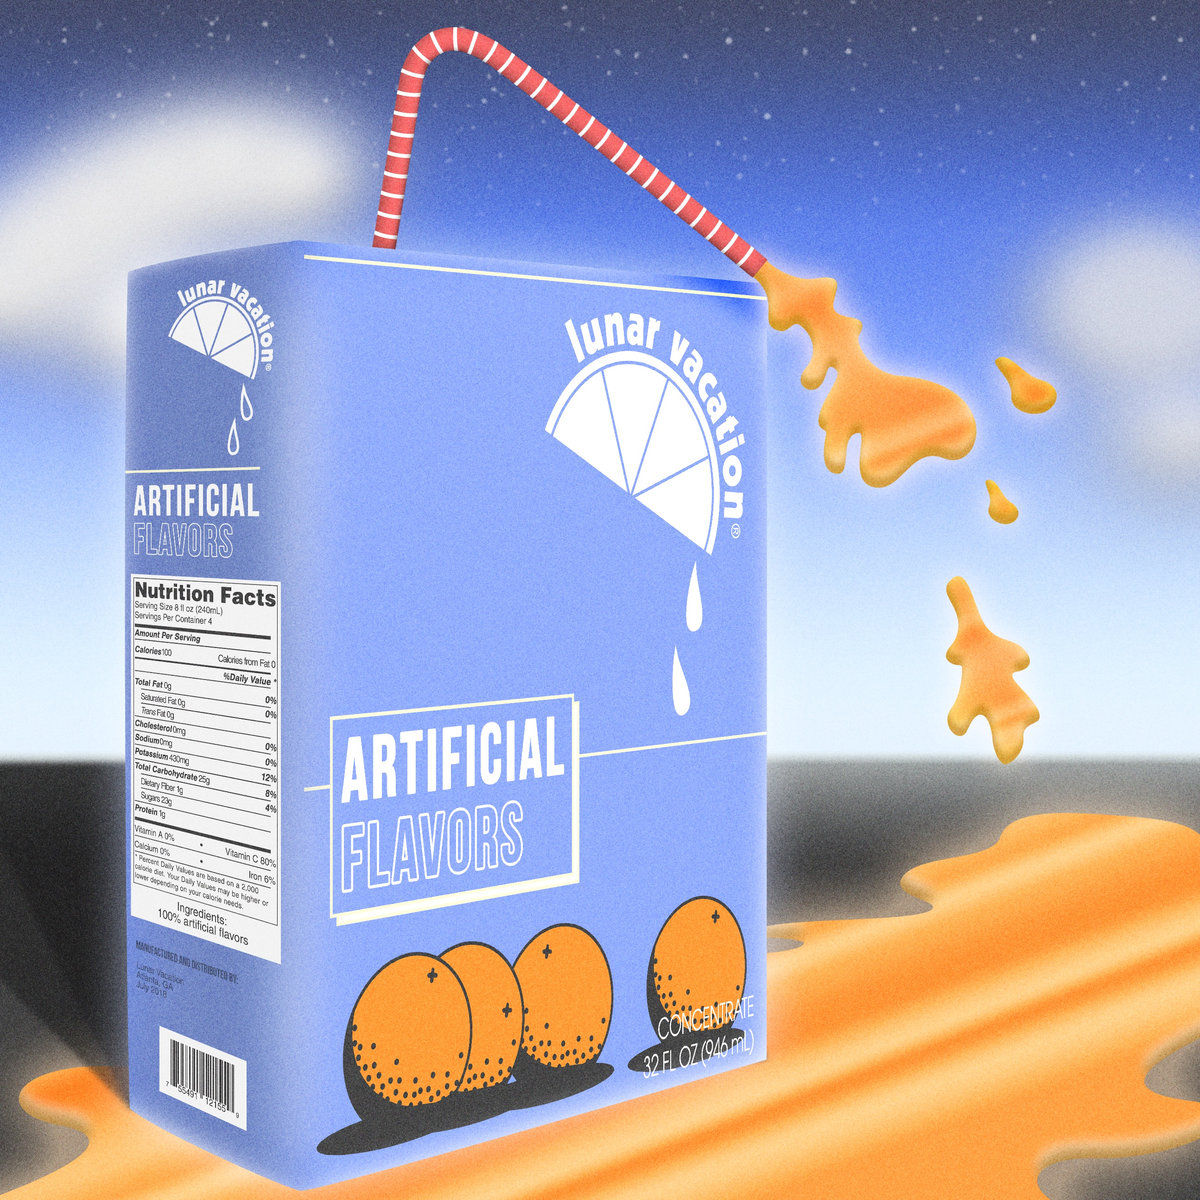 Artificial Flavors (EP)